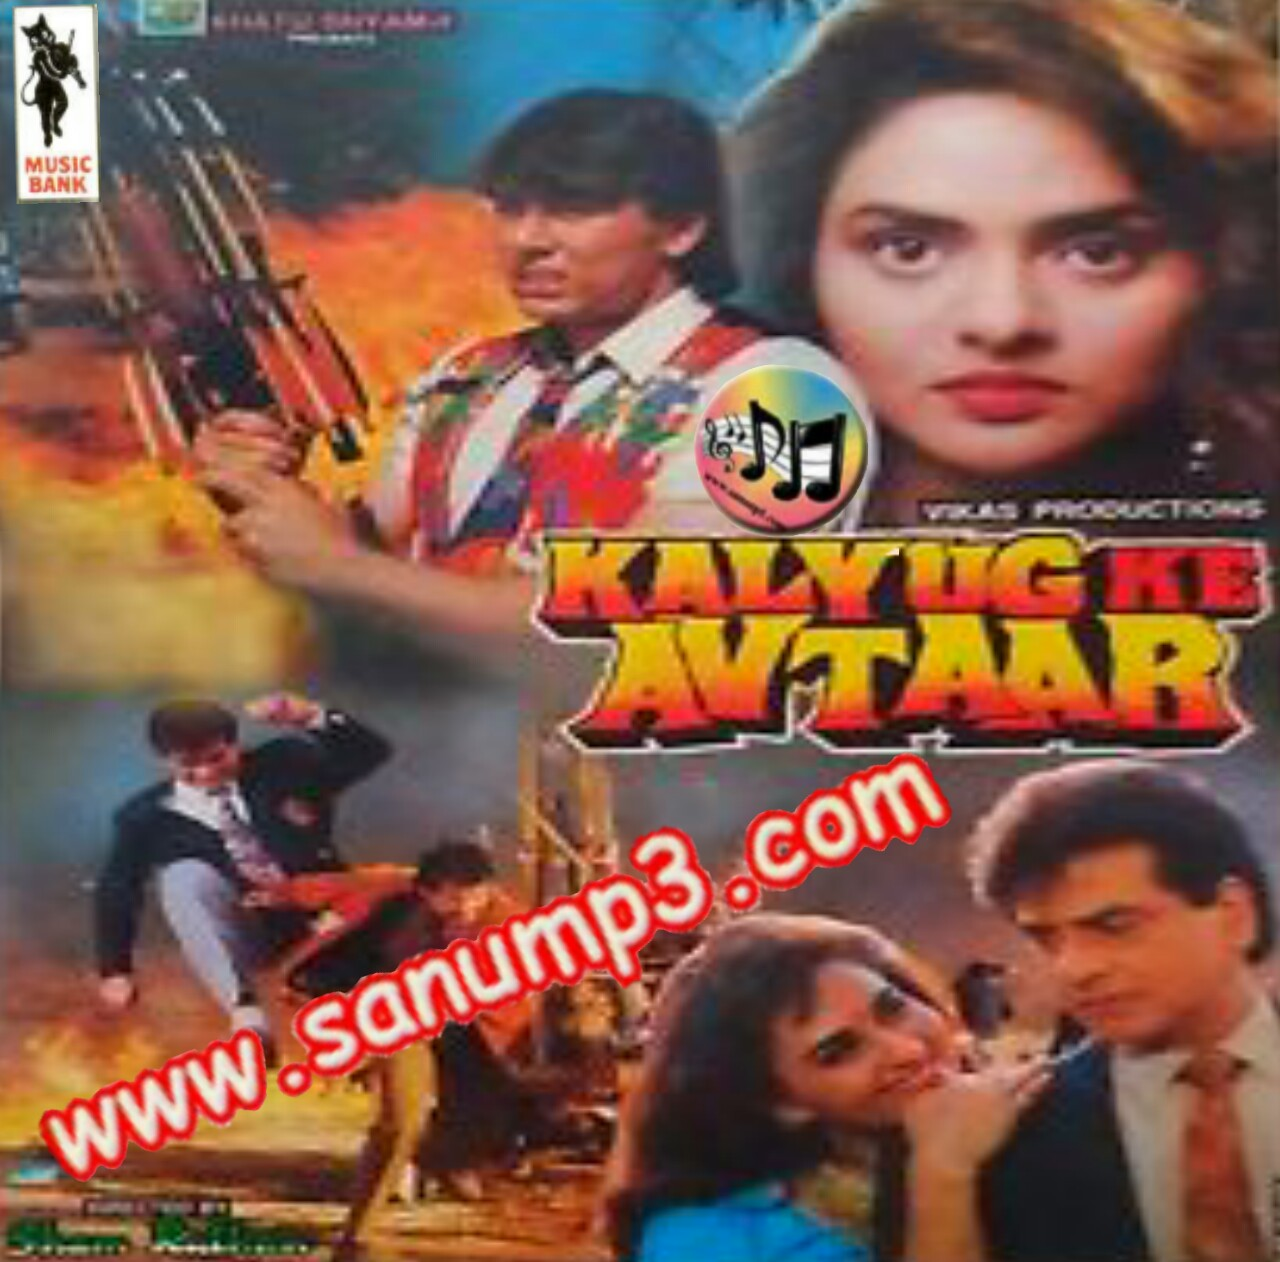 kalyug ke avtaar 1995 orignal sanu mp3 - music club